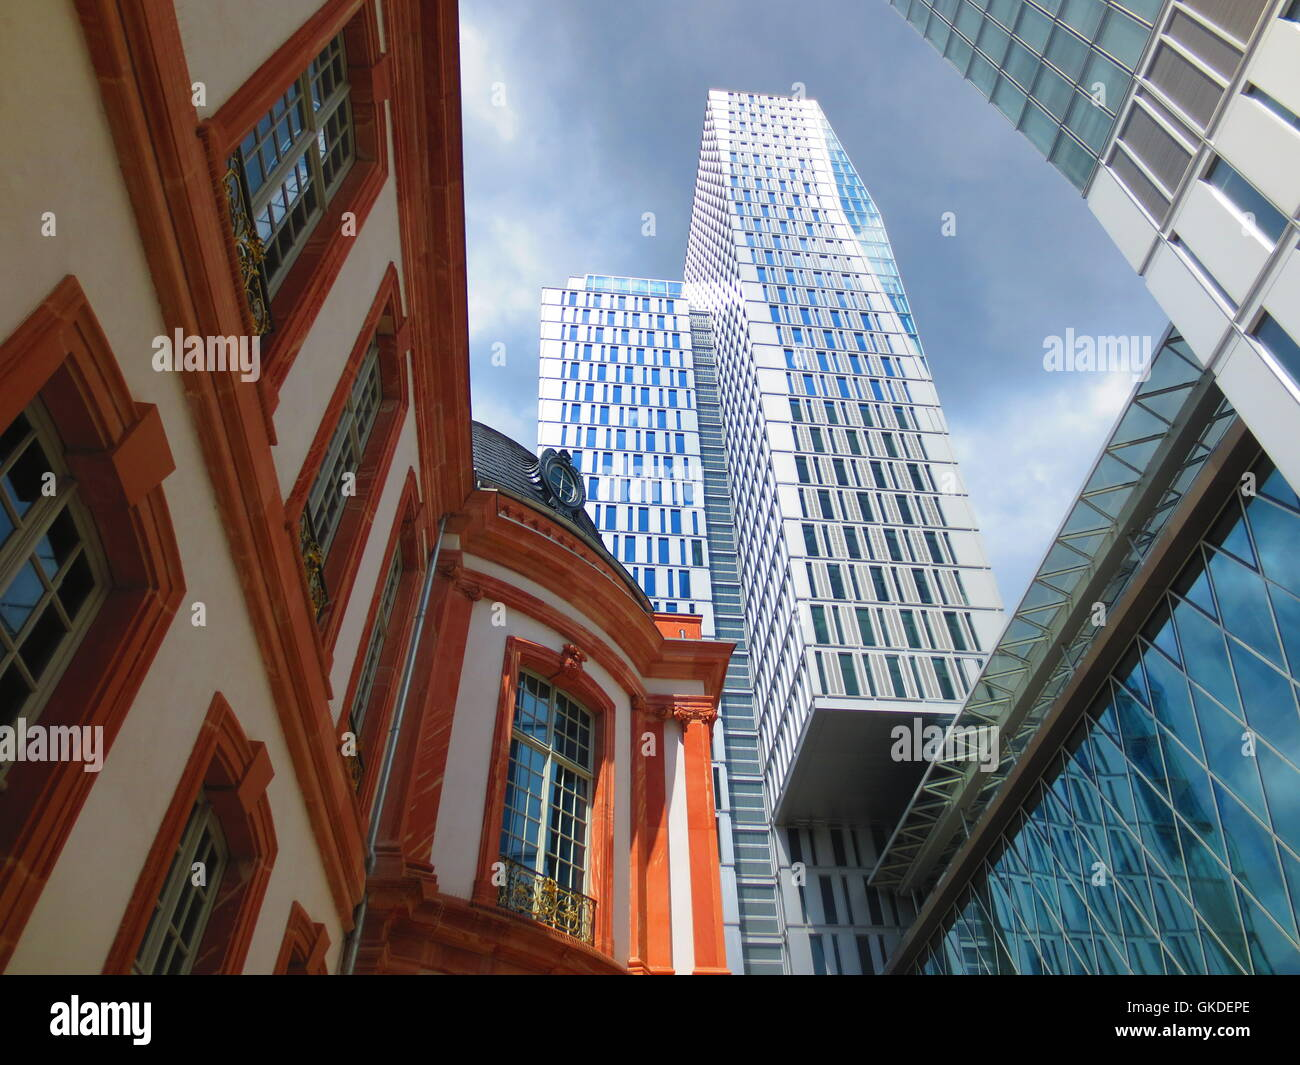 euro real estate investments - Stock Image